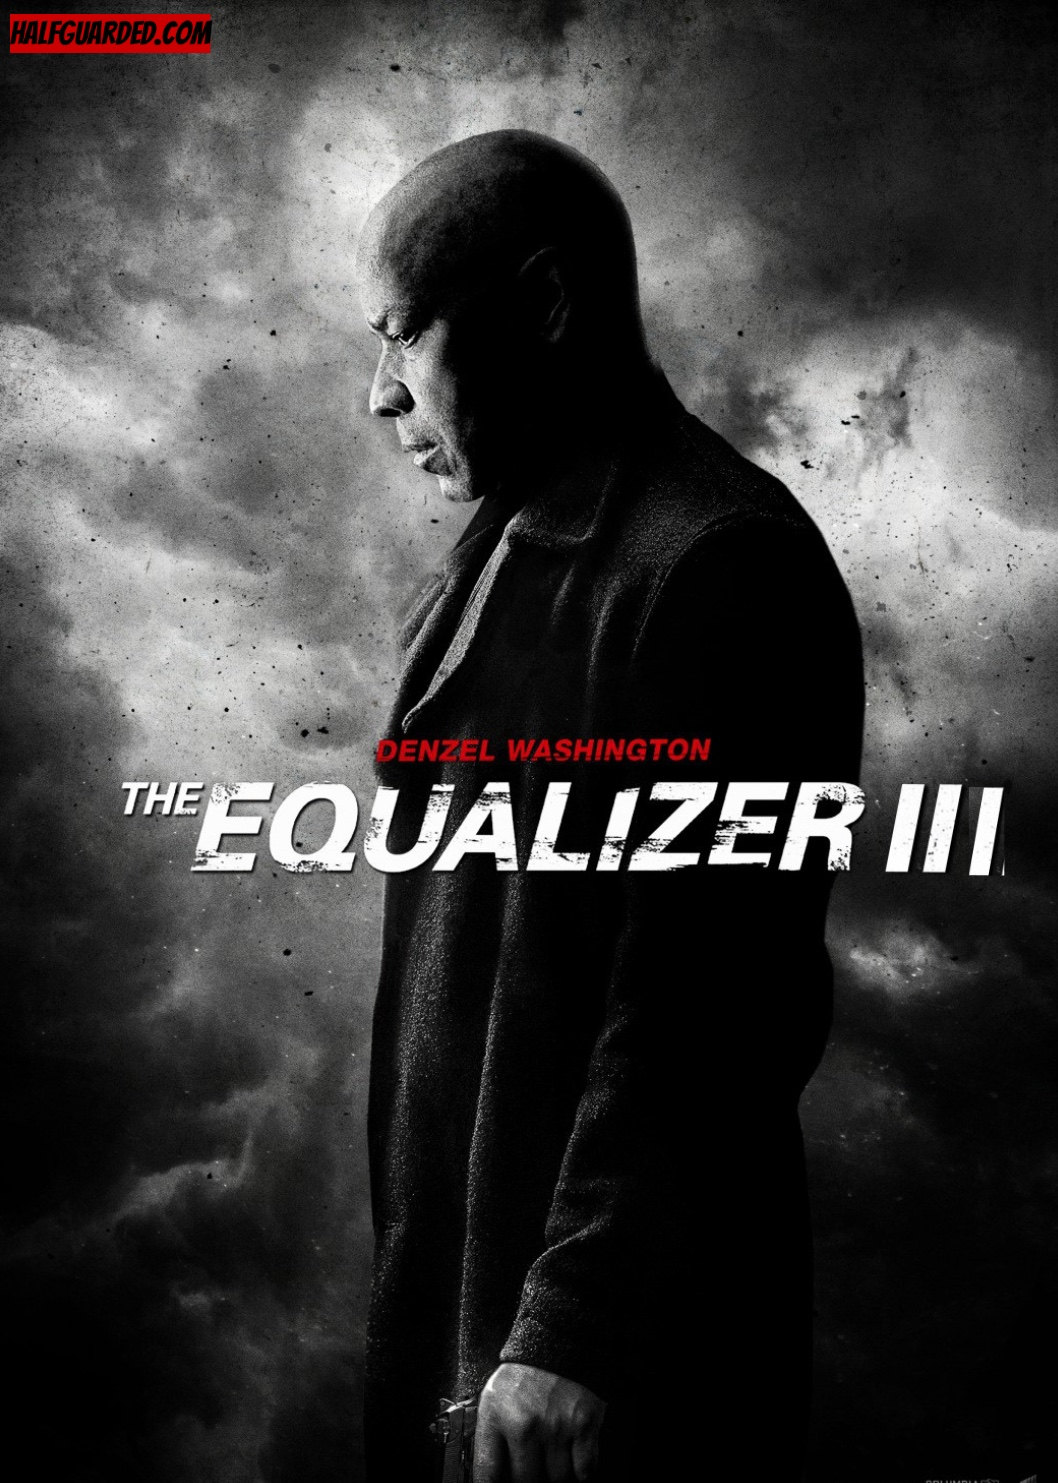 The Equalizer 3 (2021) RUMORS, Plot, Cast, and Release Date News - WILL THERE BE The Equalizer 3?!